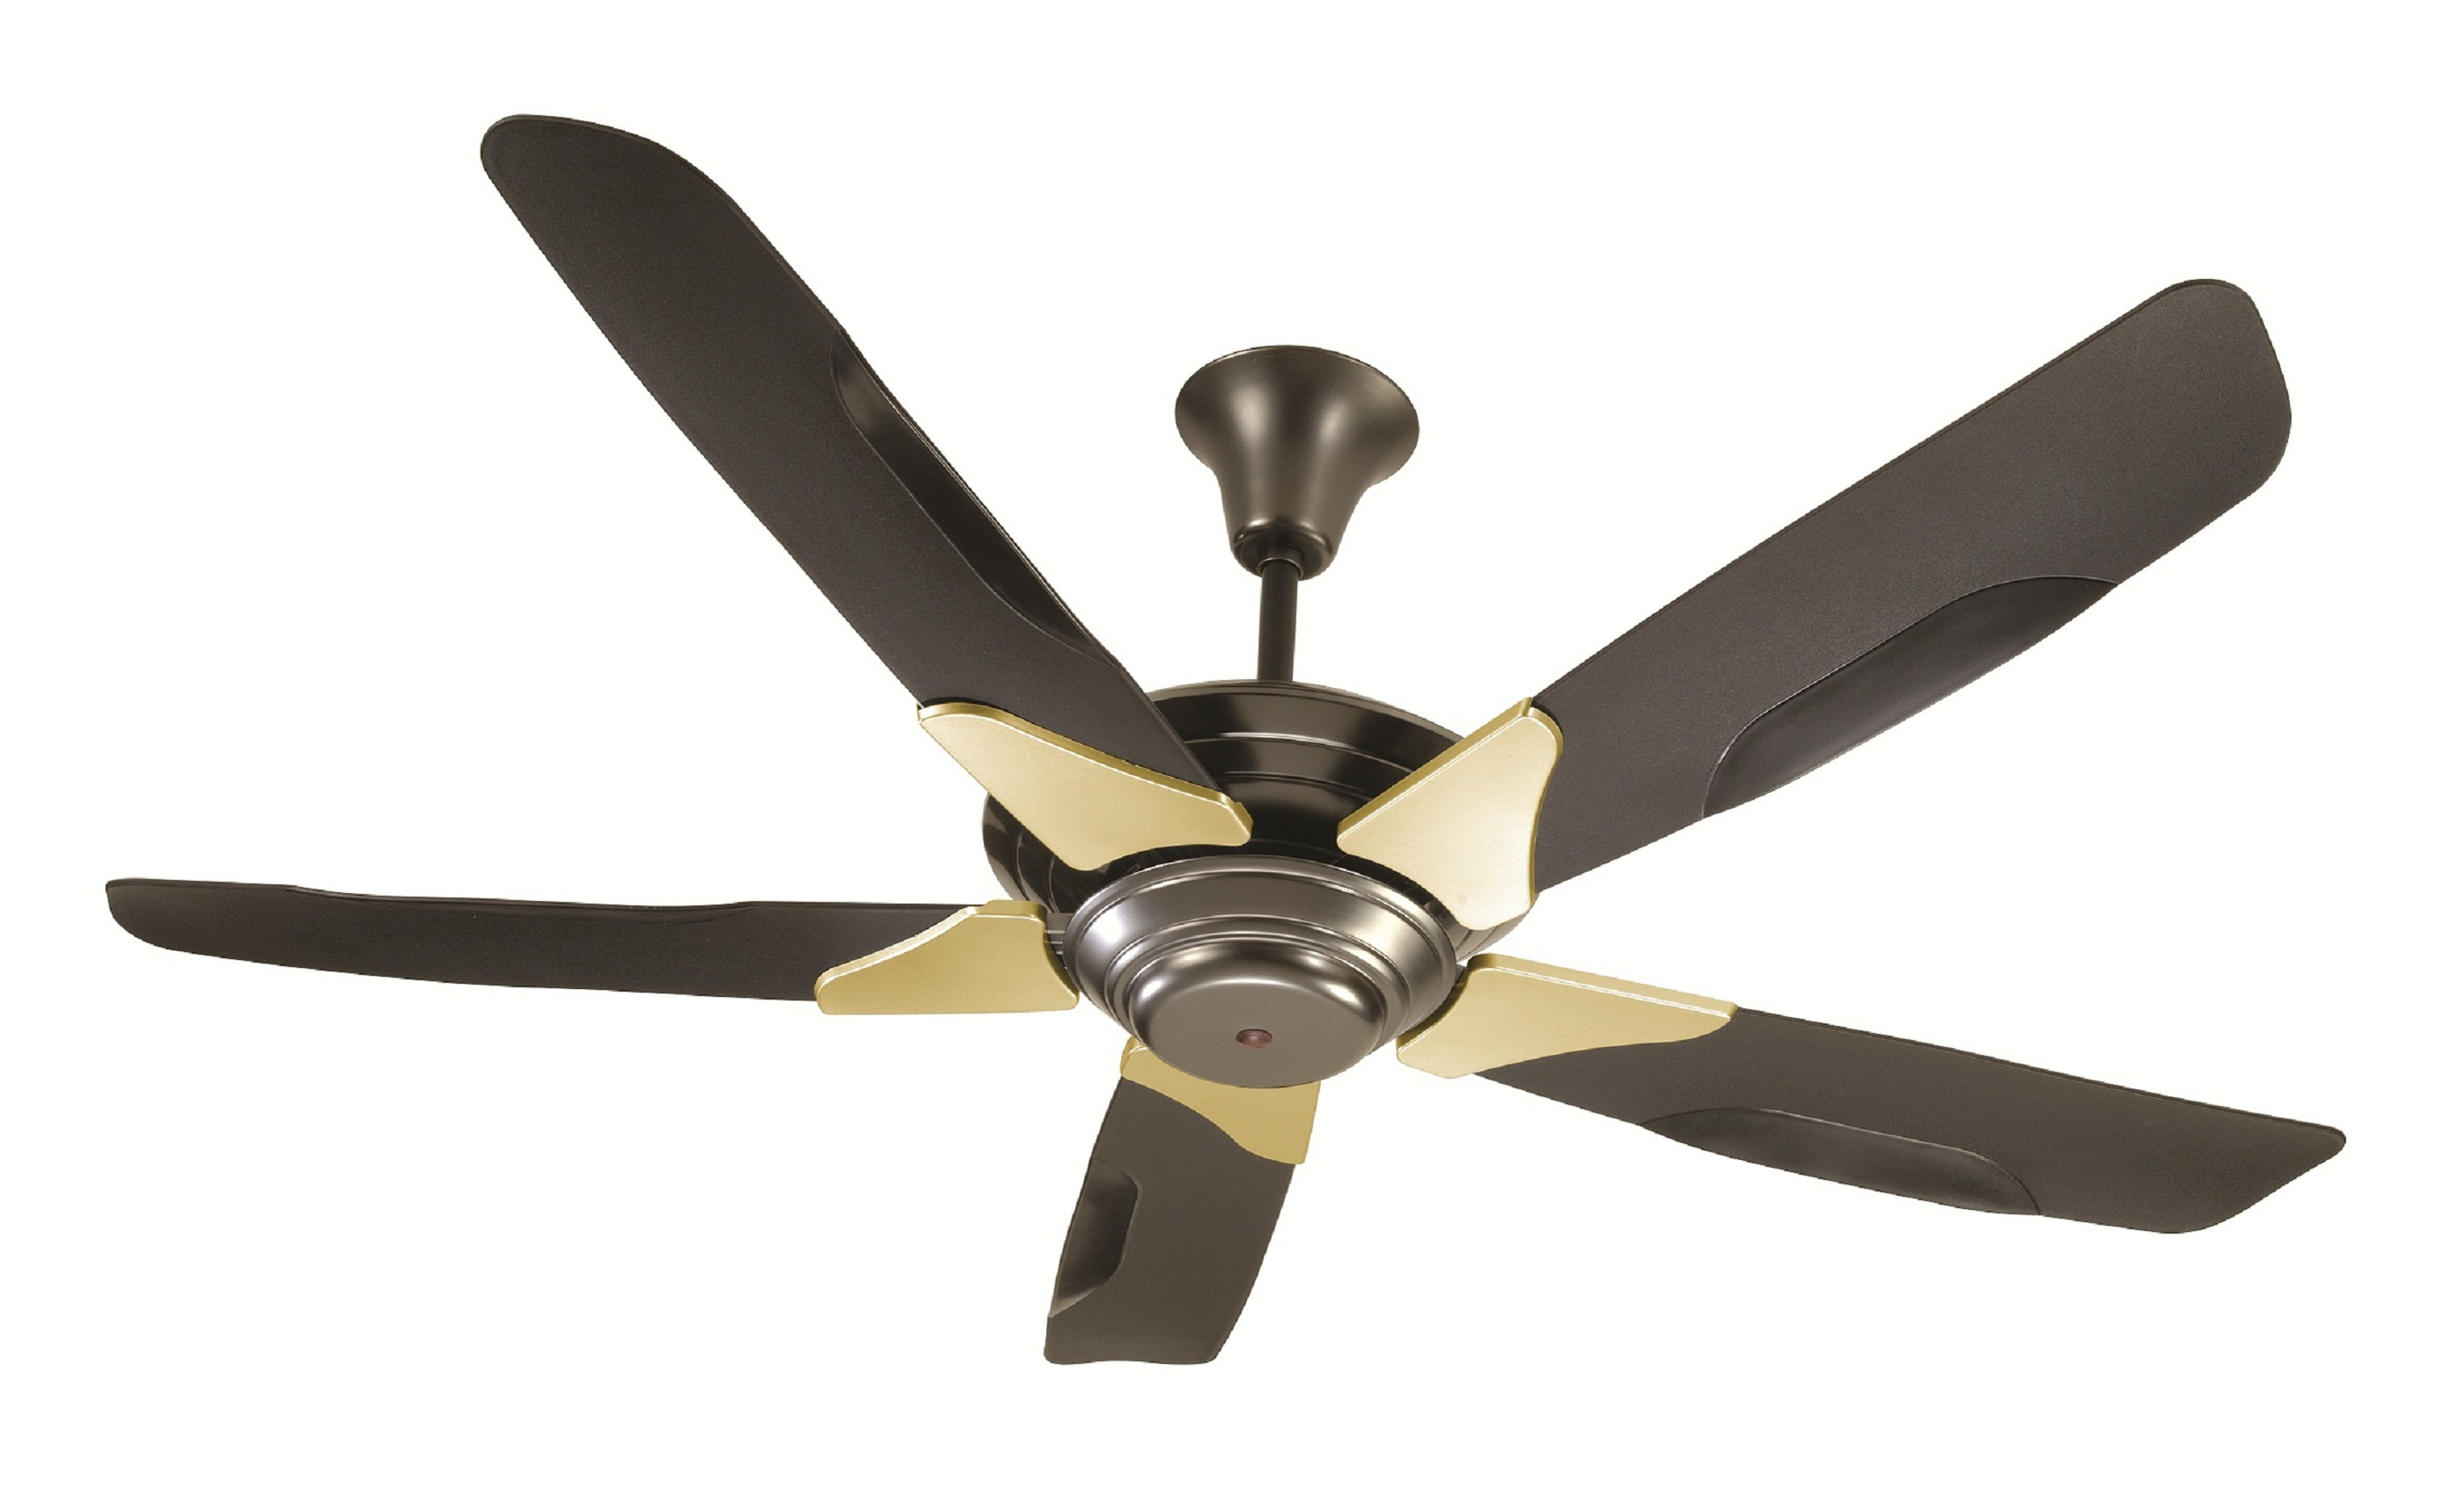 Small Ceiling Fans For Sale Ceiling Fan Wikipedia